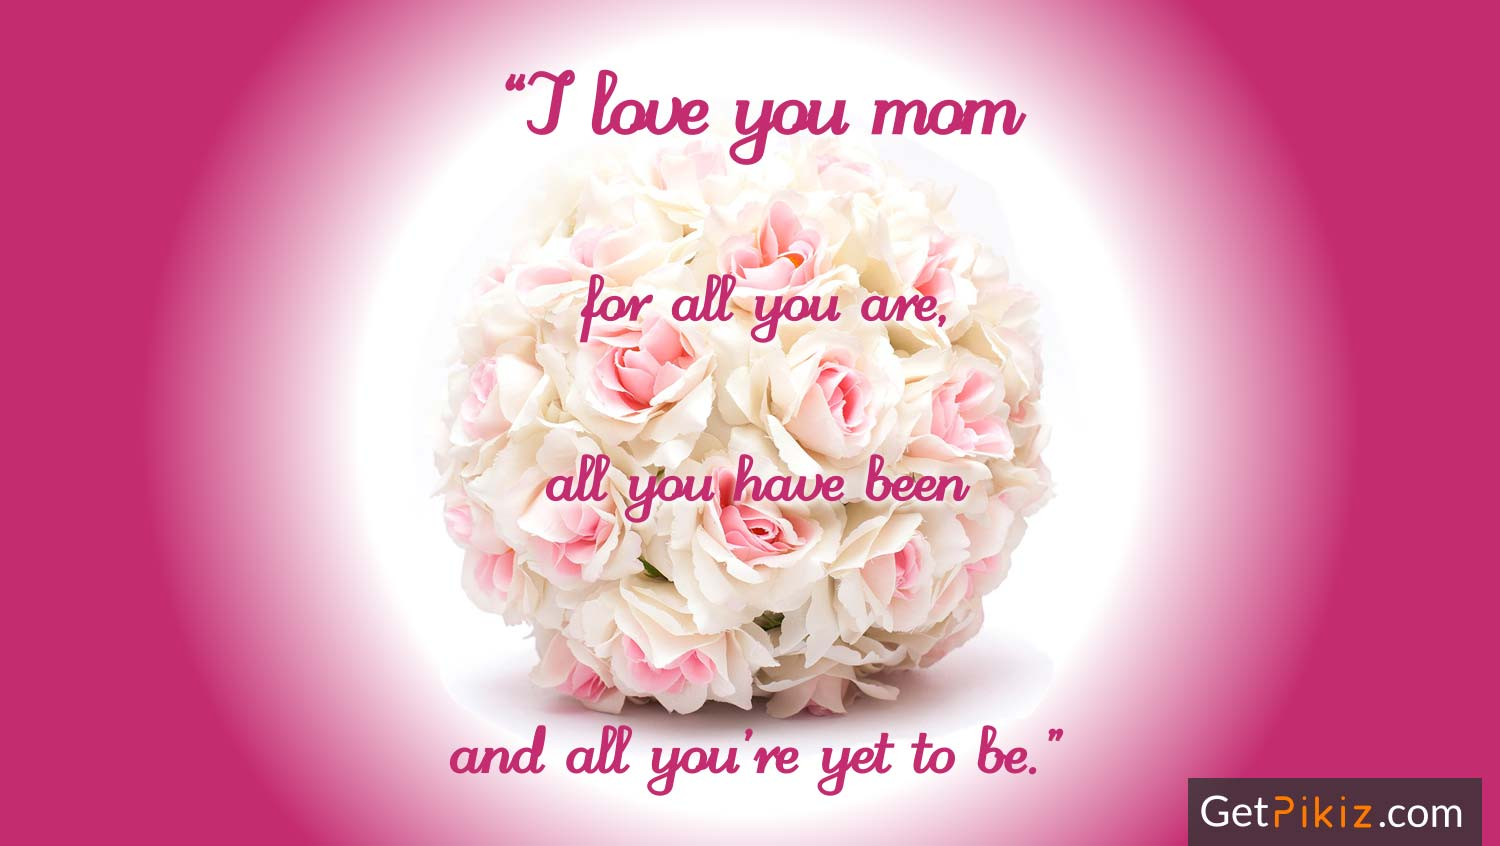 I love you mom for all you are